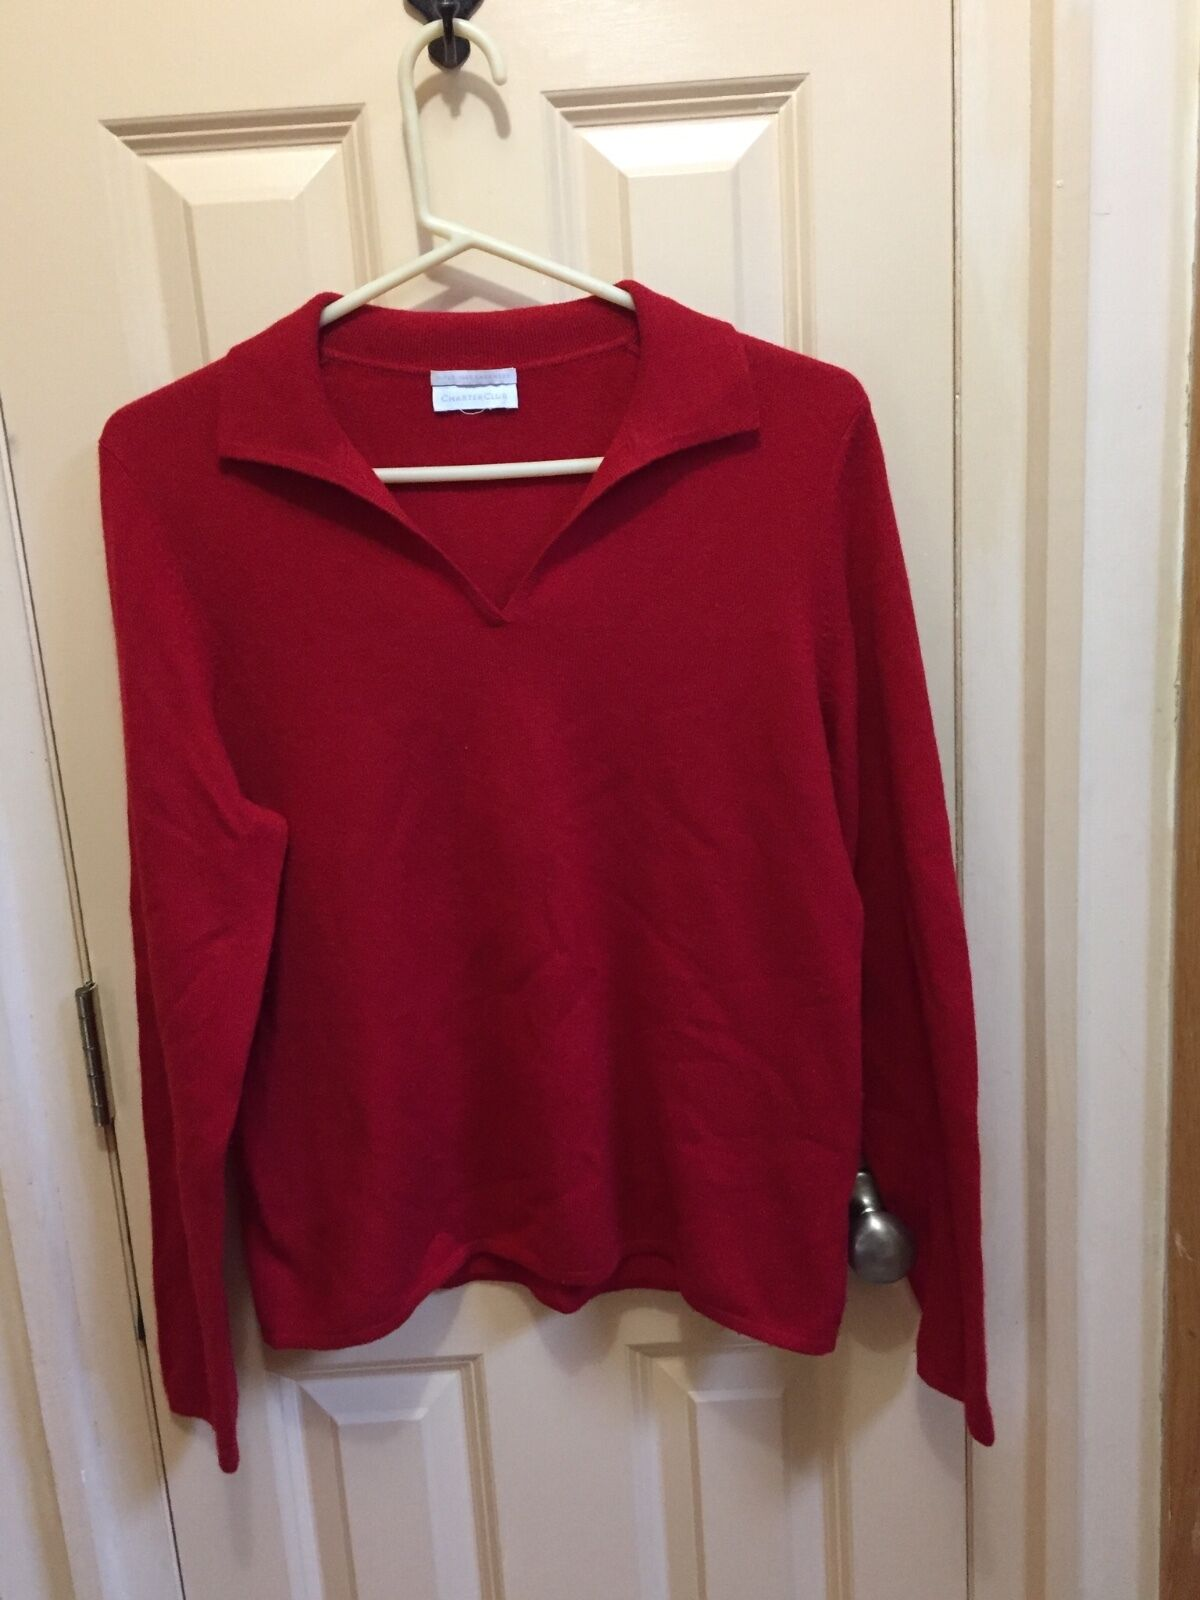 Red 2 ply 100 % cashmere top sweater blouse Charter Club m, l  collar